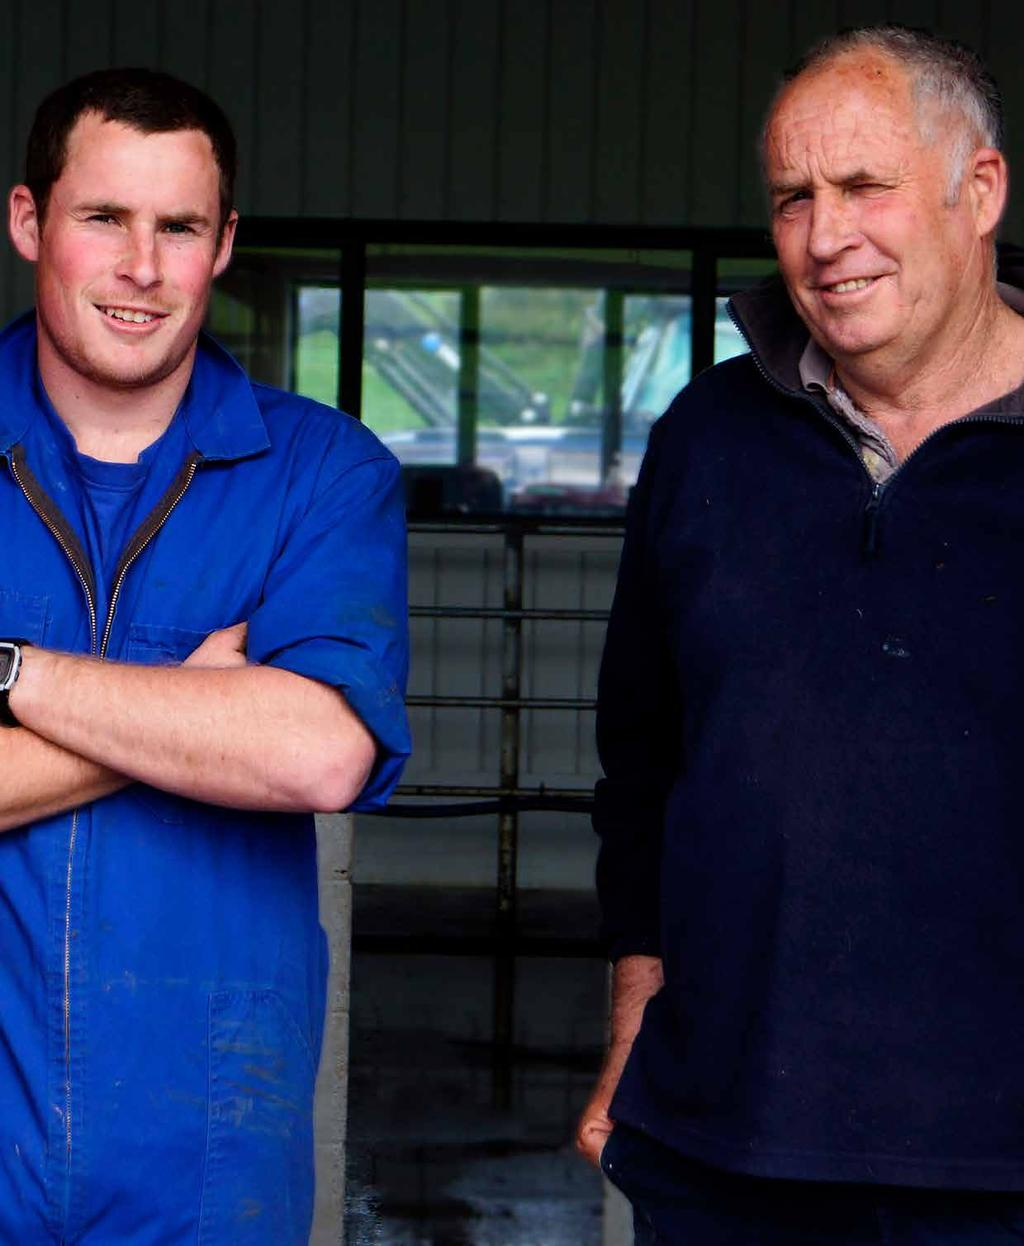 Gavin and Susan Weal along with their son Stuart run a 180 cow dairy farm close to Te Awamutu, and since installing the Lely Astronaut A4 robotic milking system, have been experiencing a new way of